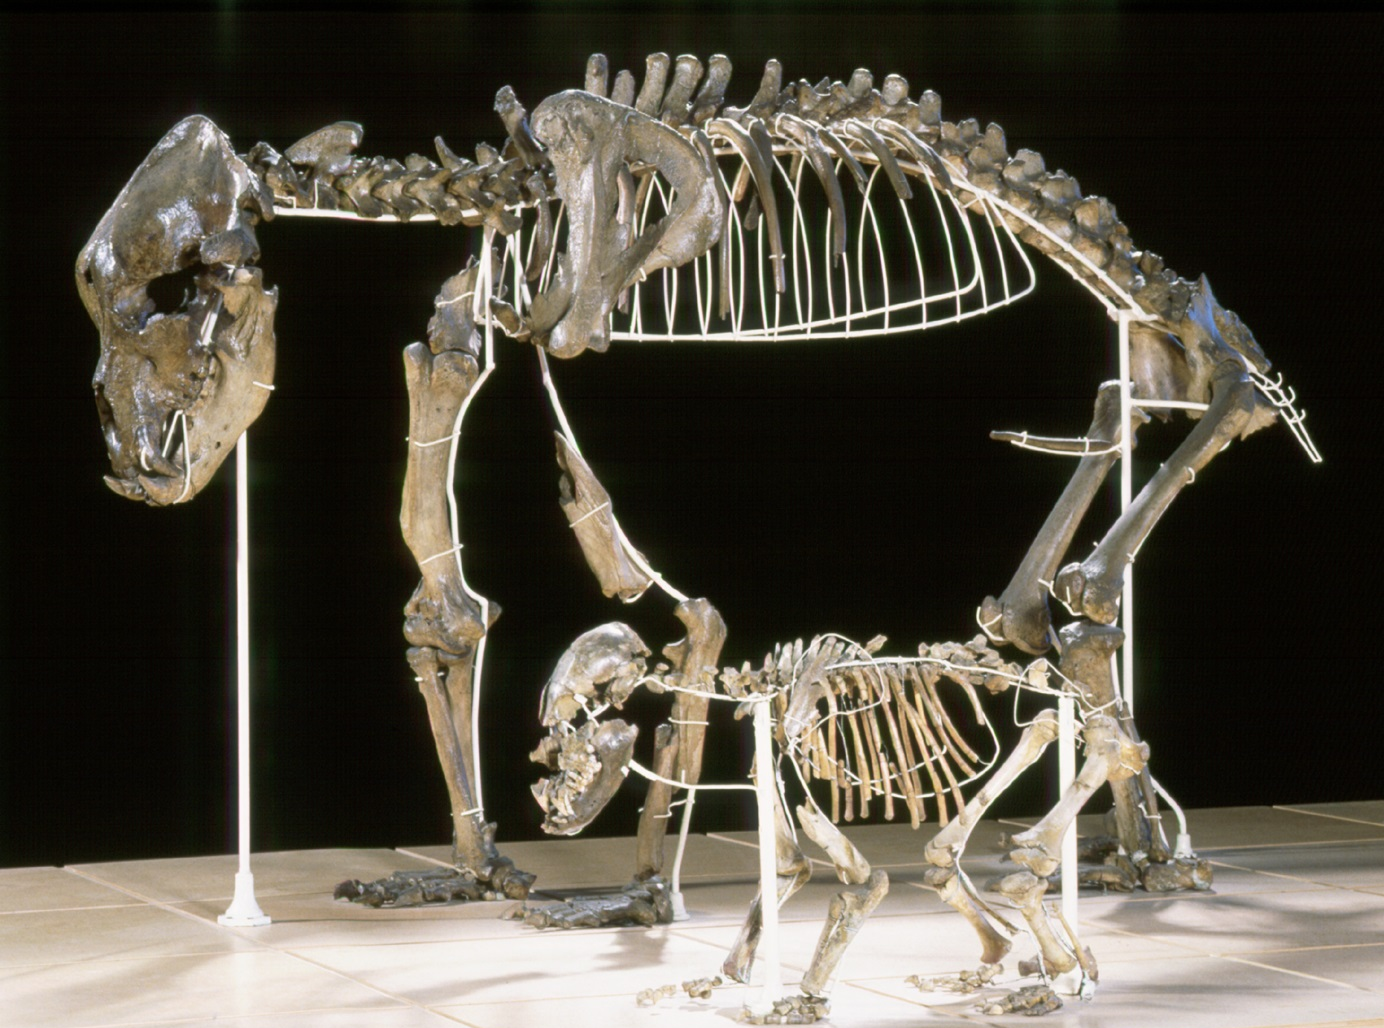 Fossil bear turned out to be a vegetarian